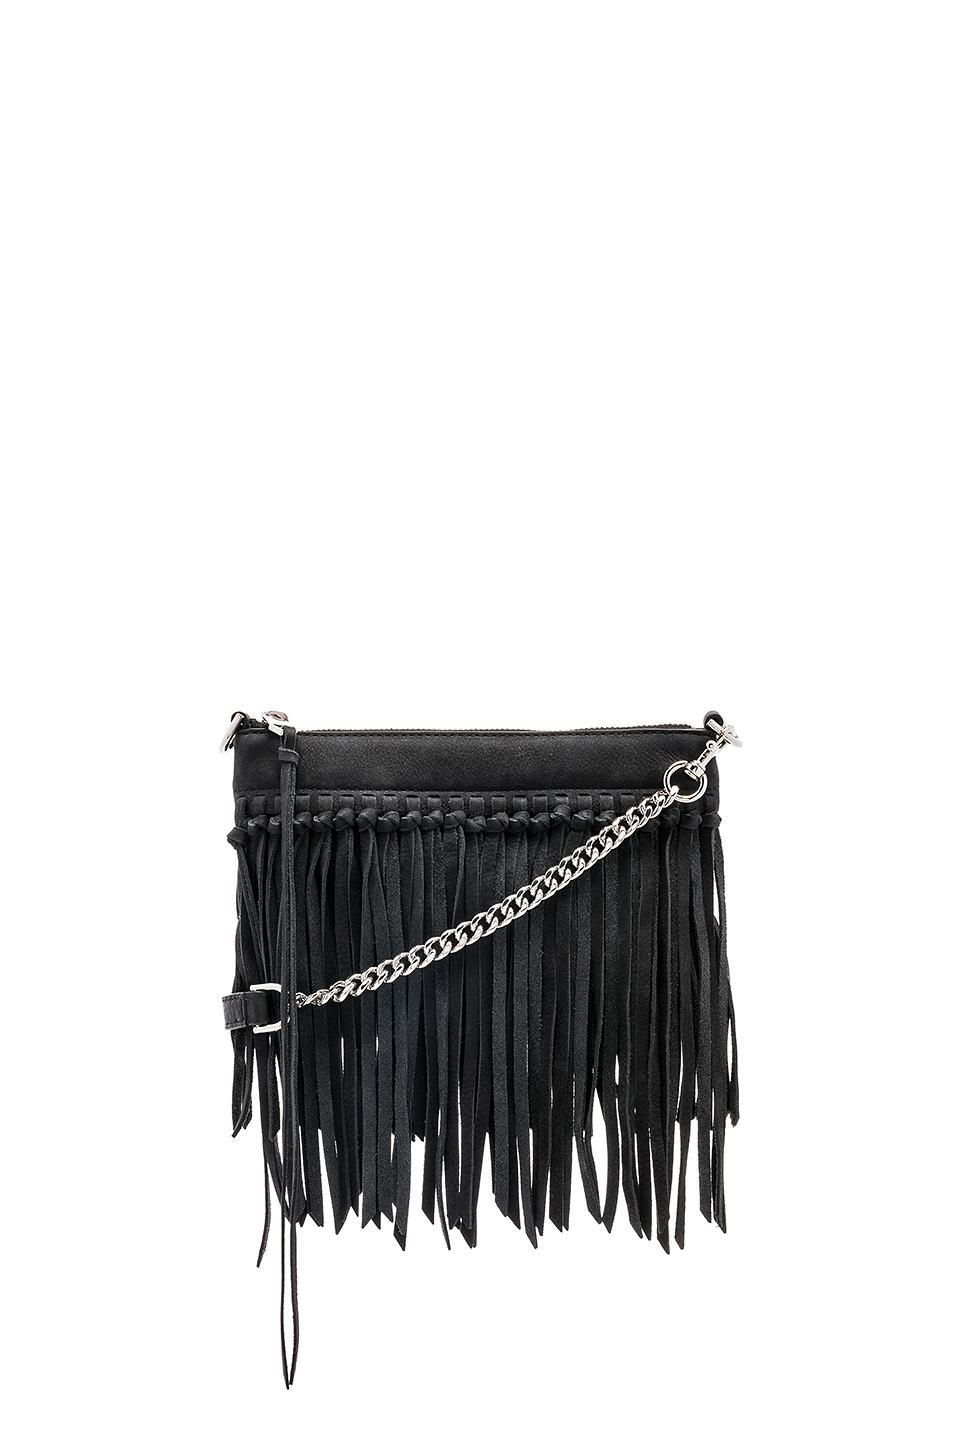 8e3ecff14e2 Stevie Top Zip Crossbody Bag, Rebecca Minkoff